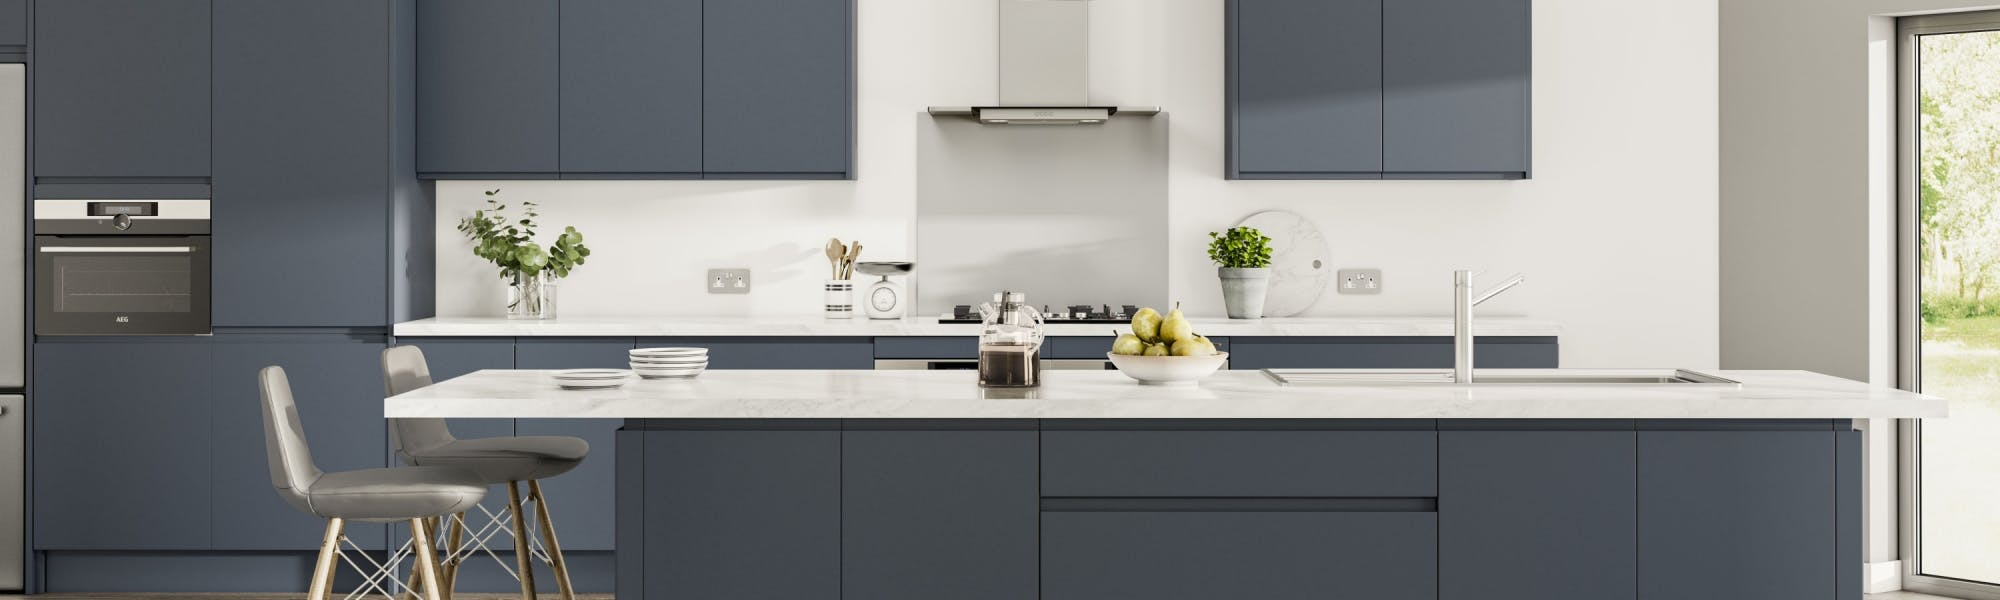 We Take Care Of Everything From Kitchen Design To Installation